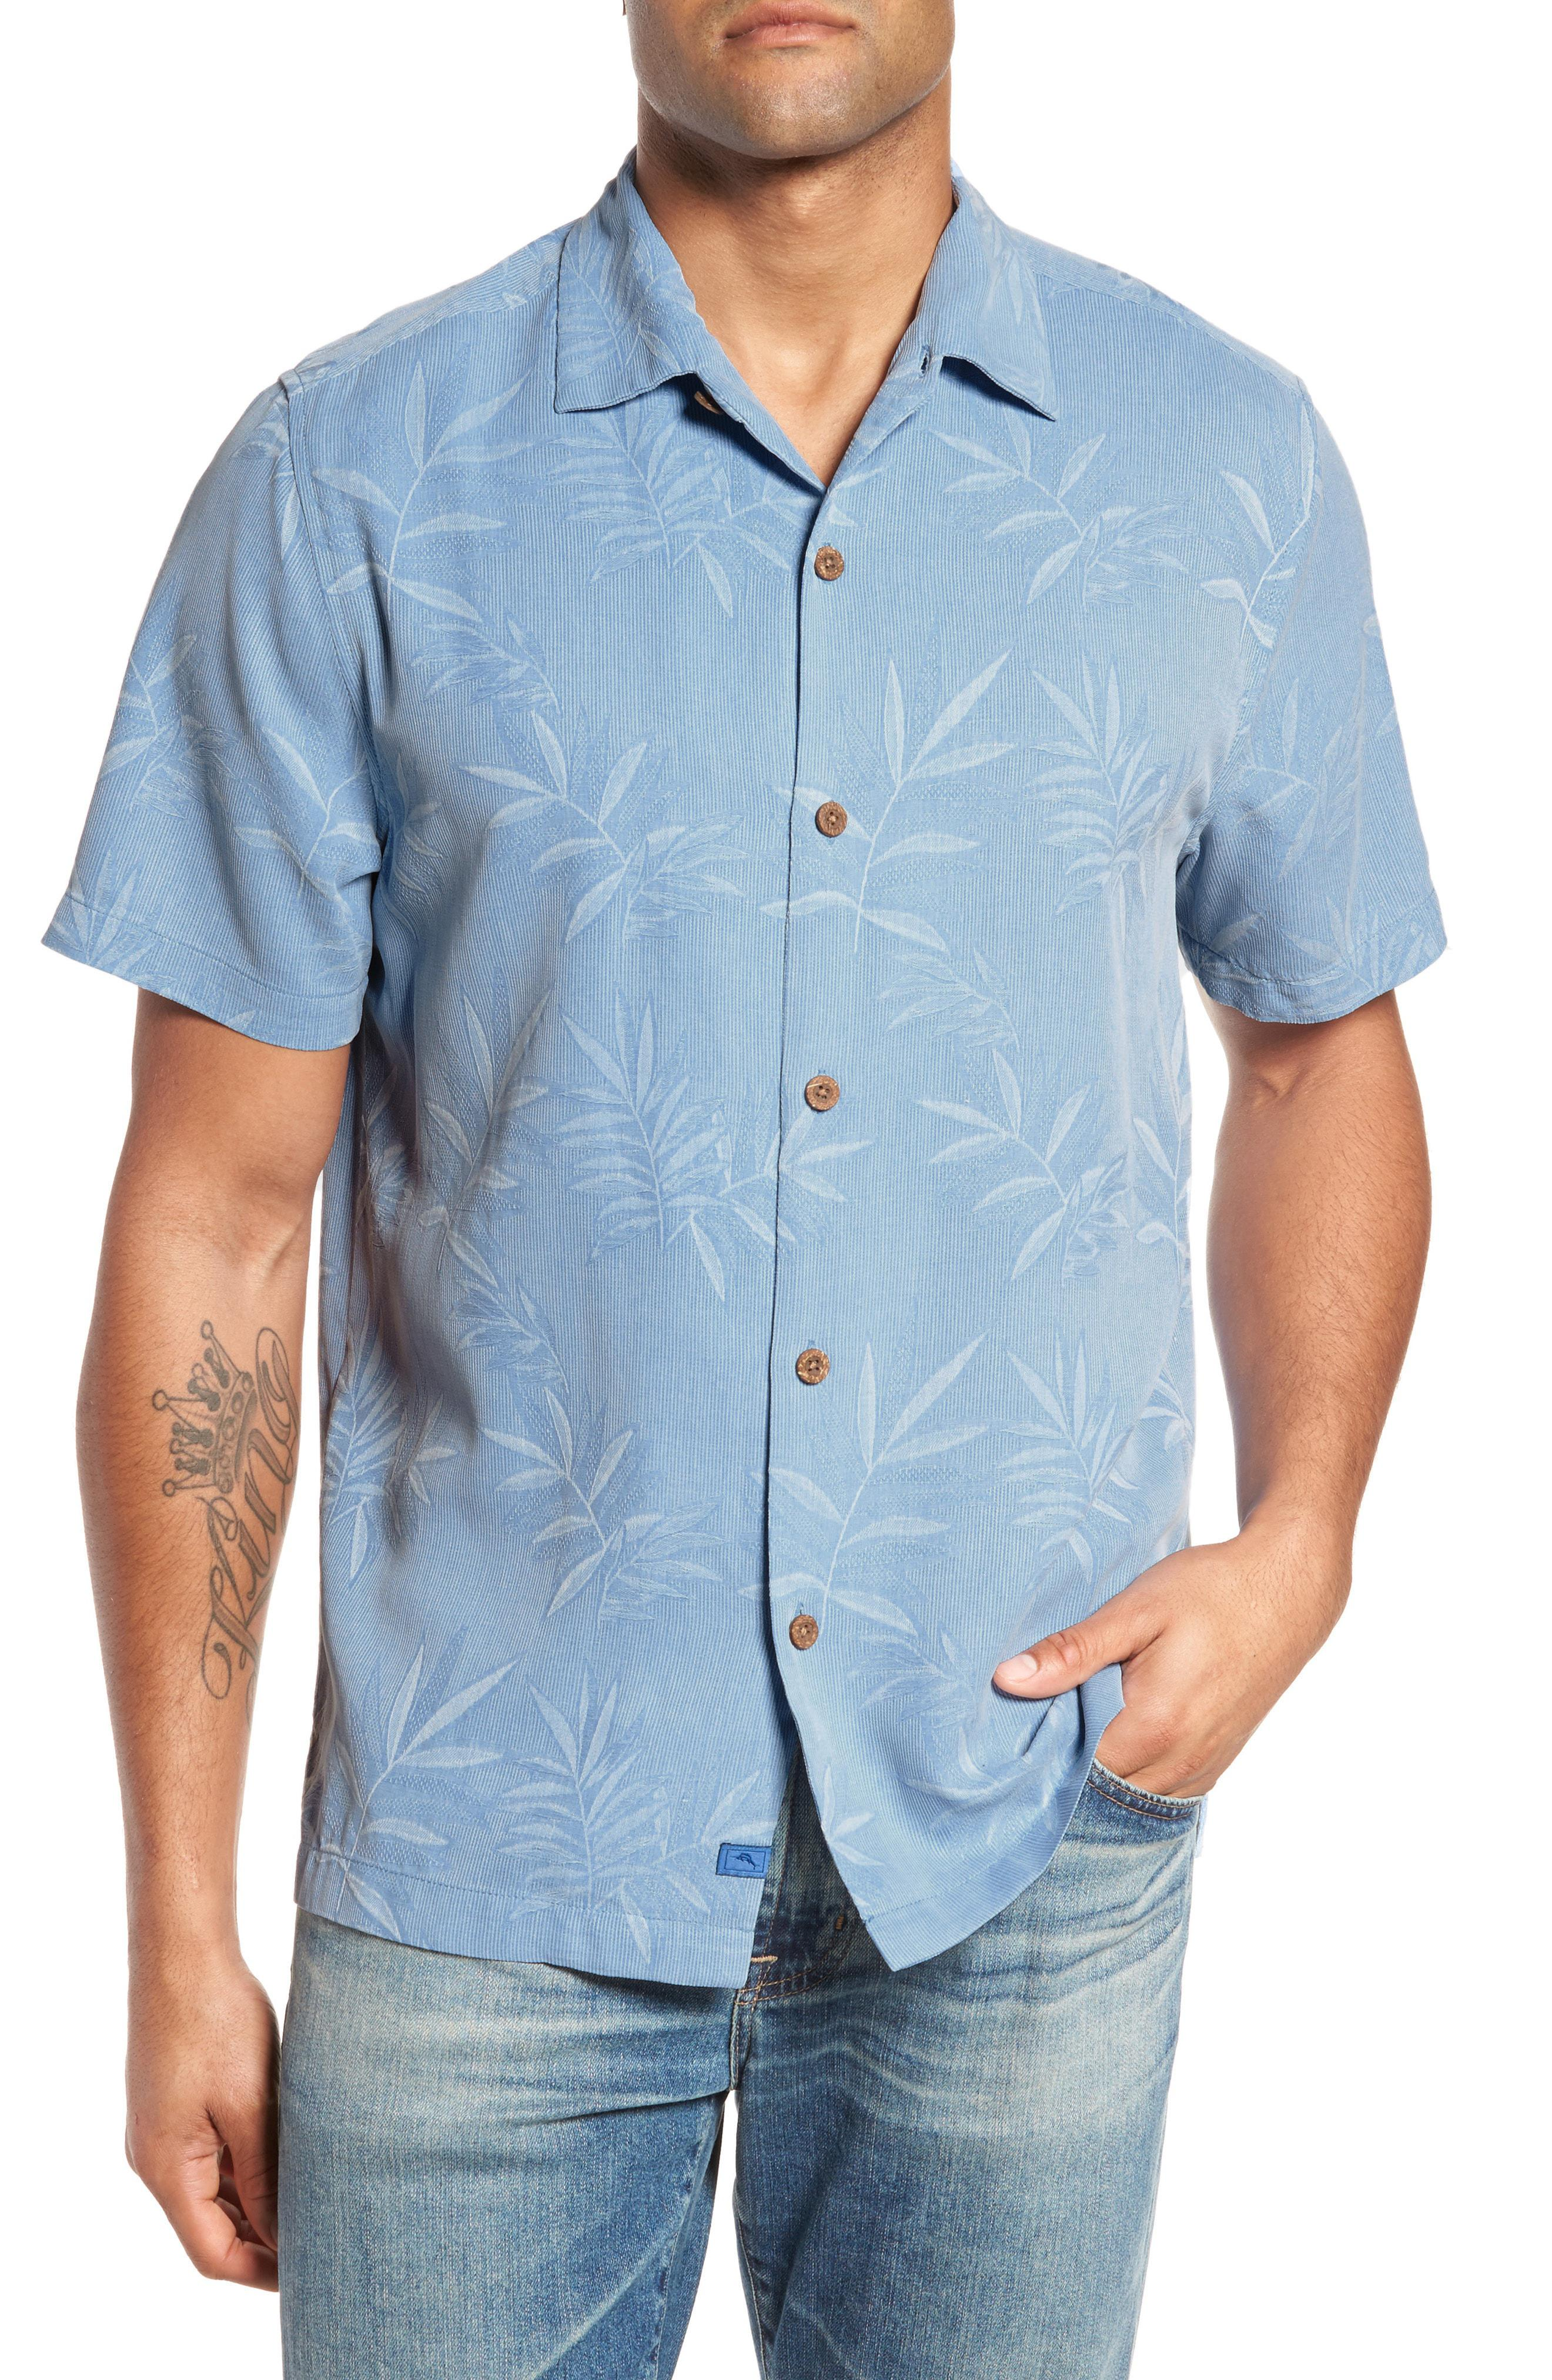 4dbe27cc Lyst - Tommy Bahama Luau Floral Silk Shirt in Blue for Men